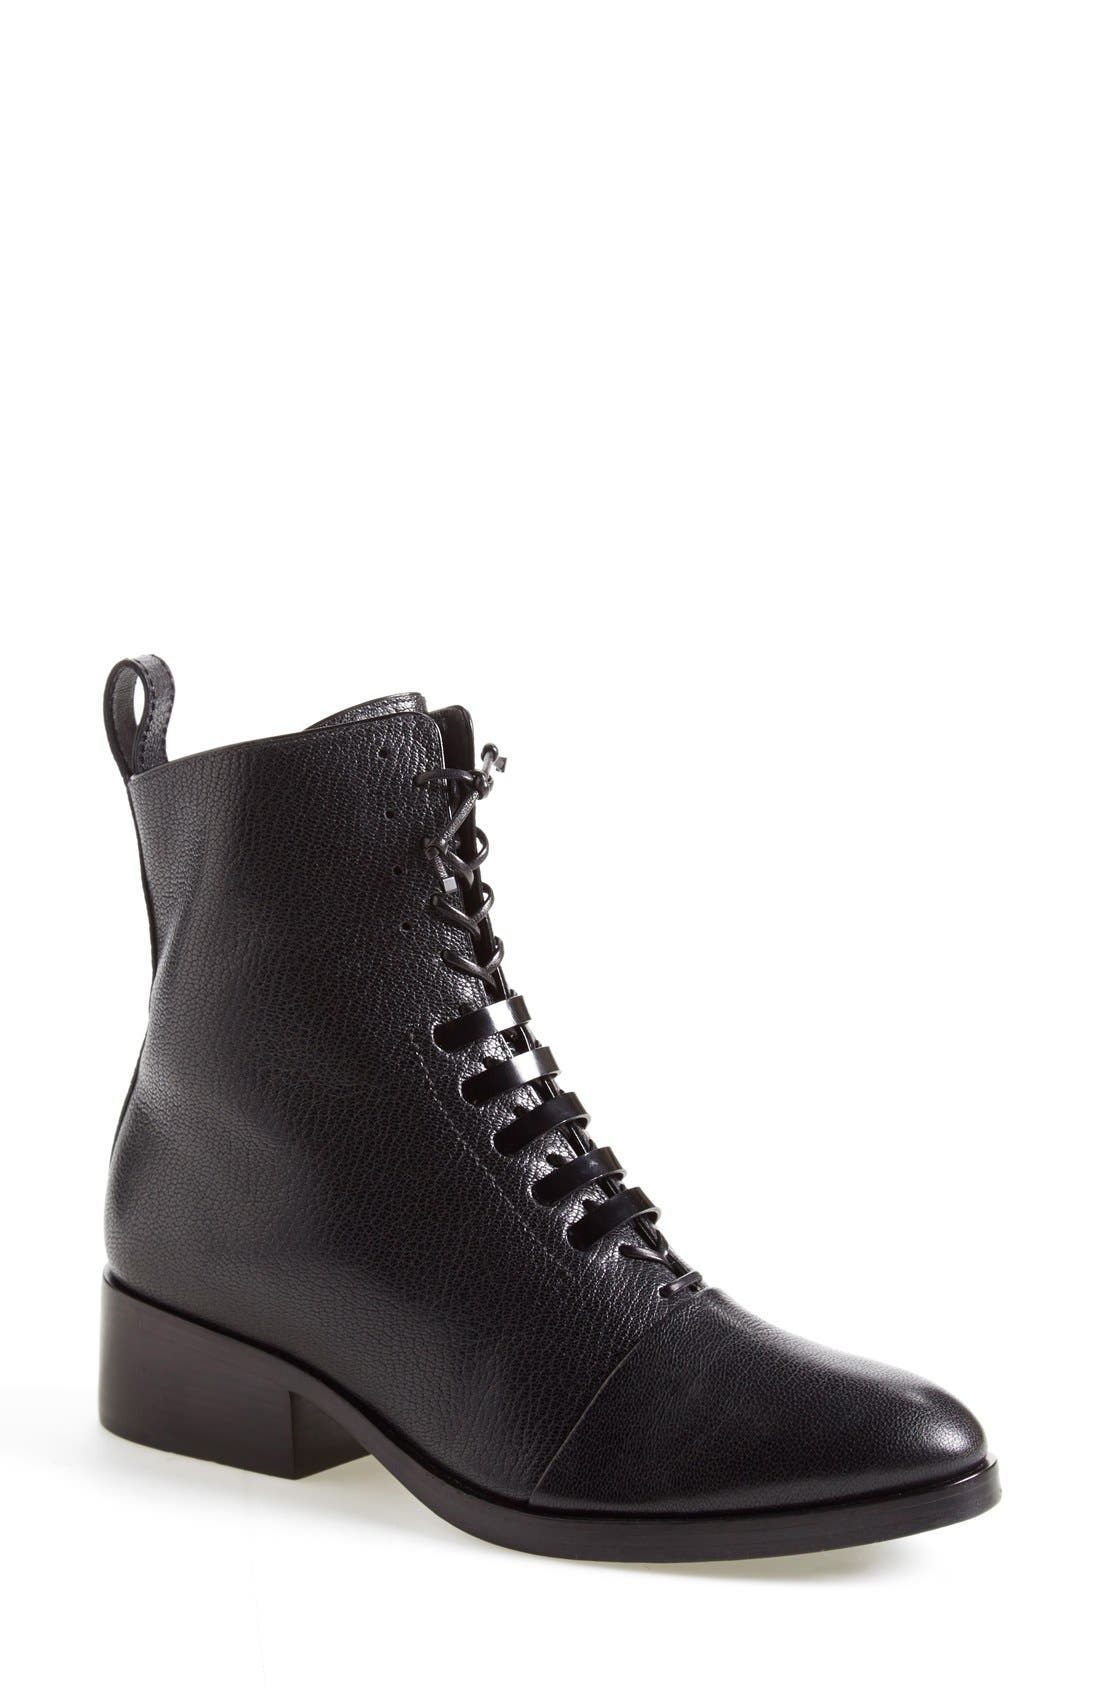 Main Image - 3.1 Phillip Lim 'Alexa' Lace-Up Ankle Boot (Women)